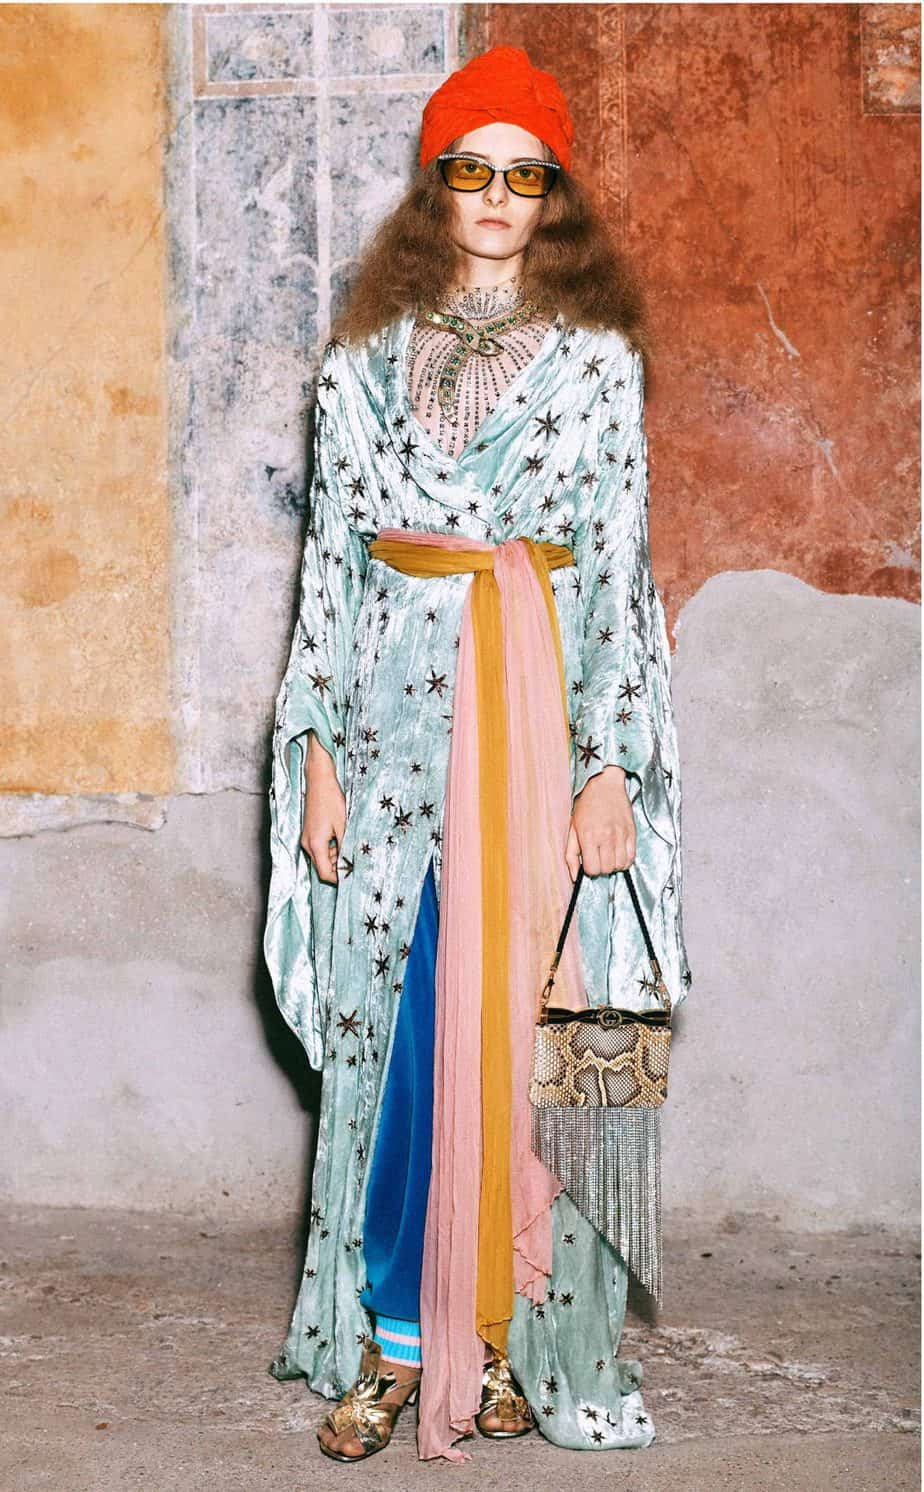 GUCCI, FALL 2019. WOMEN'S FASHION, Photographer Harmony Korine, Art Director, Christopher Simmonds - 53